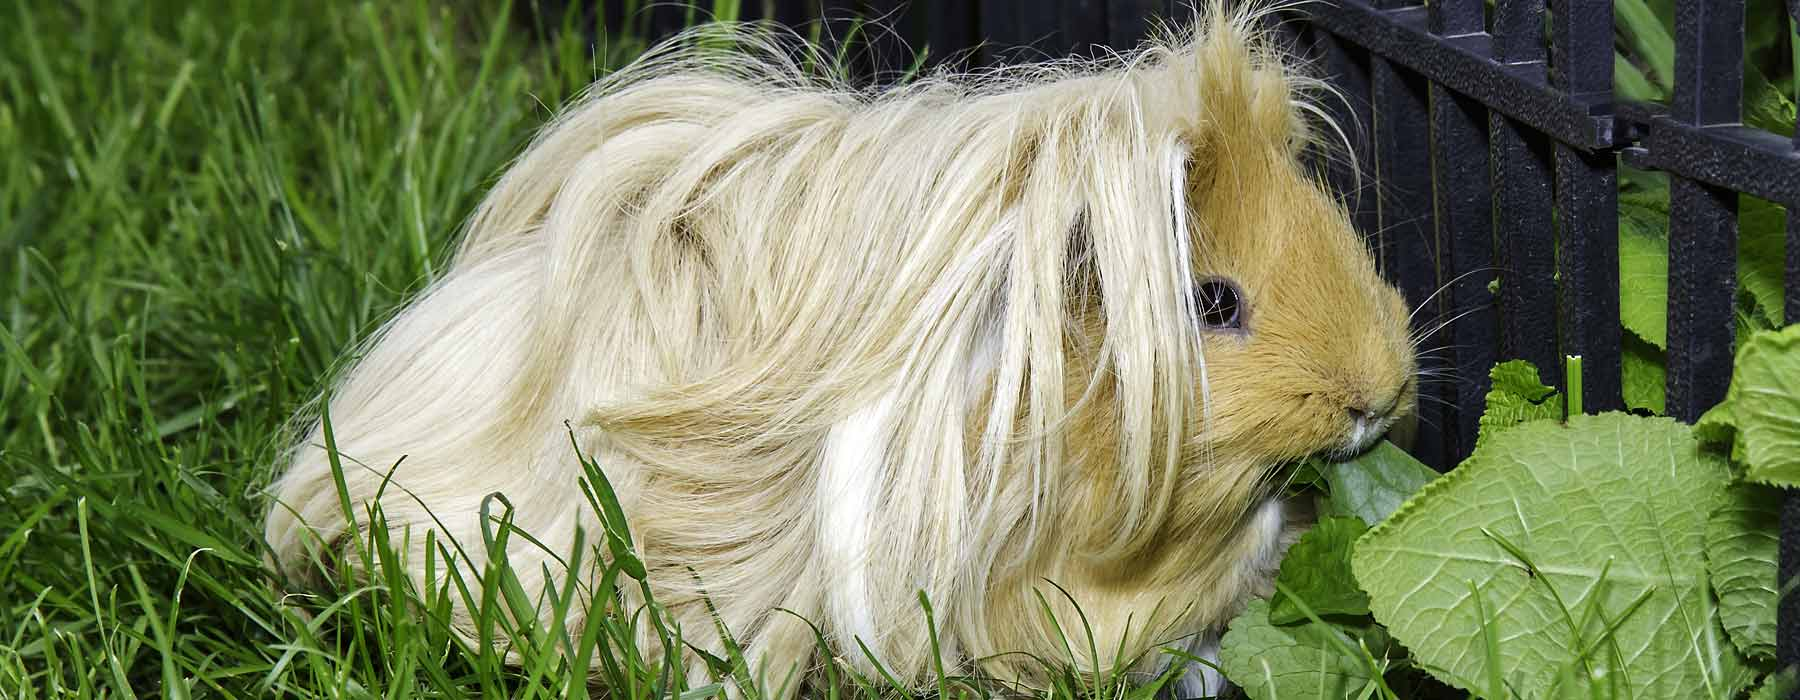 long haired guinea pig in the grass